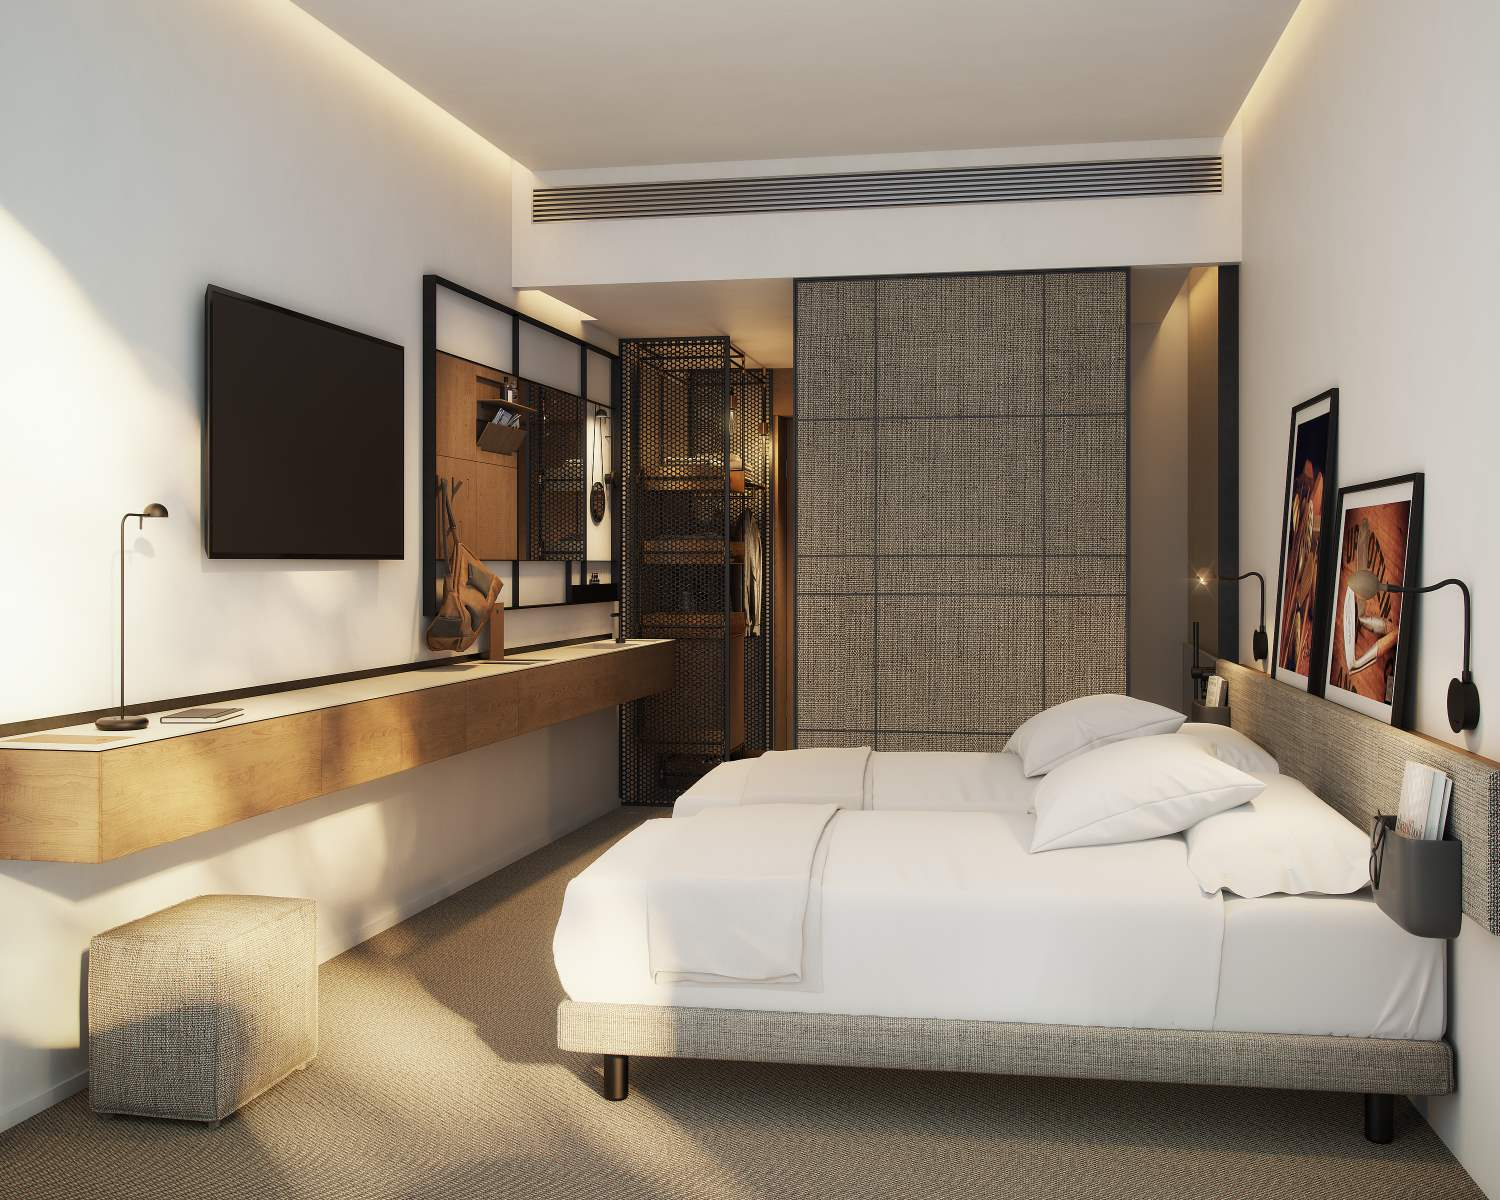 Render 3D - Architectural Visualization - Hotel